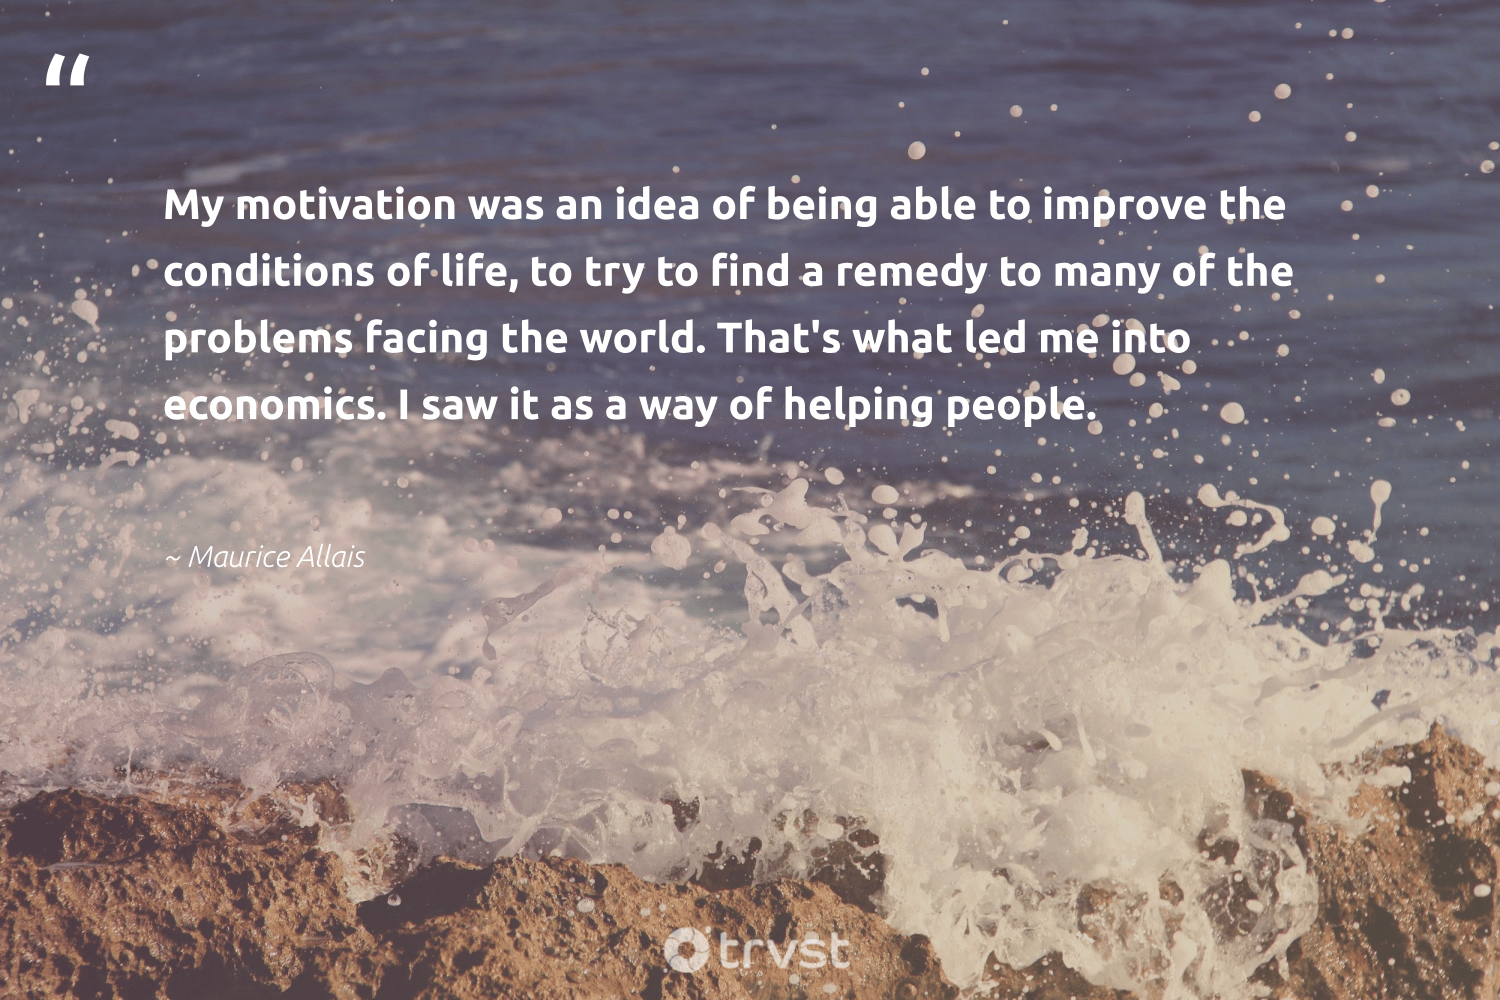 """My motivation was an idea of being able to improve the conditions of life, to try to find a remedy to many of the problems facing the world. That's what led me into economics. I saw it as a way of helping people.""  - Maurice Allais #trvst #quotes #economics #motivation #goals #softskills #begreat #changetheworld #mindful #nevergiveup #changemakers #dotherightthing"